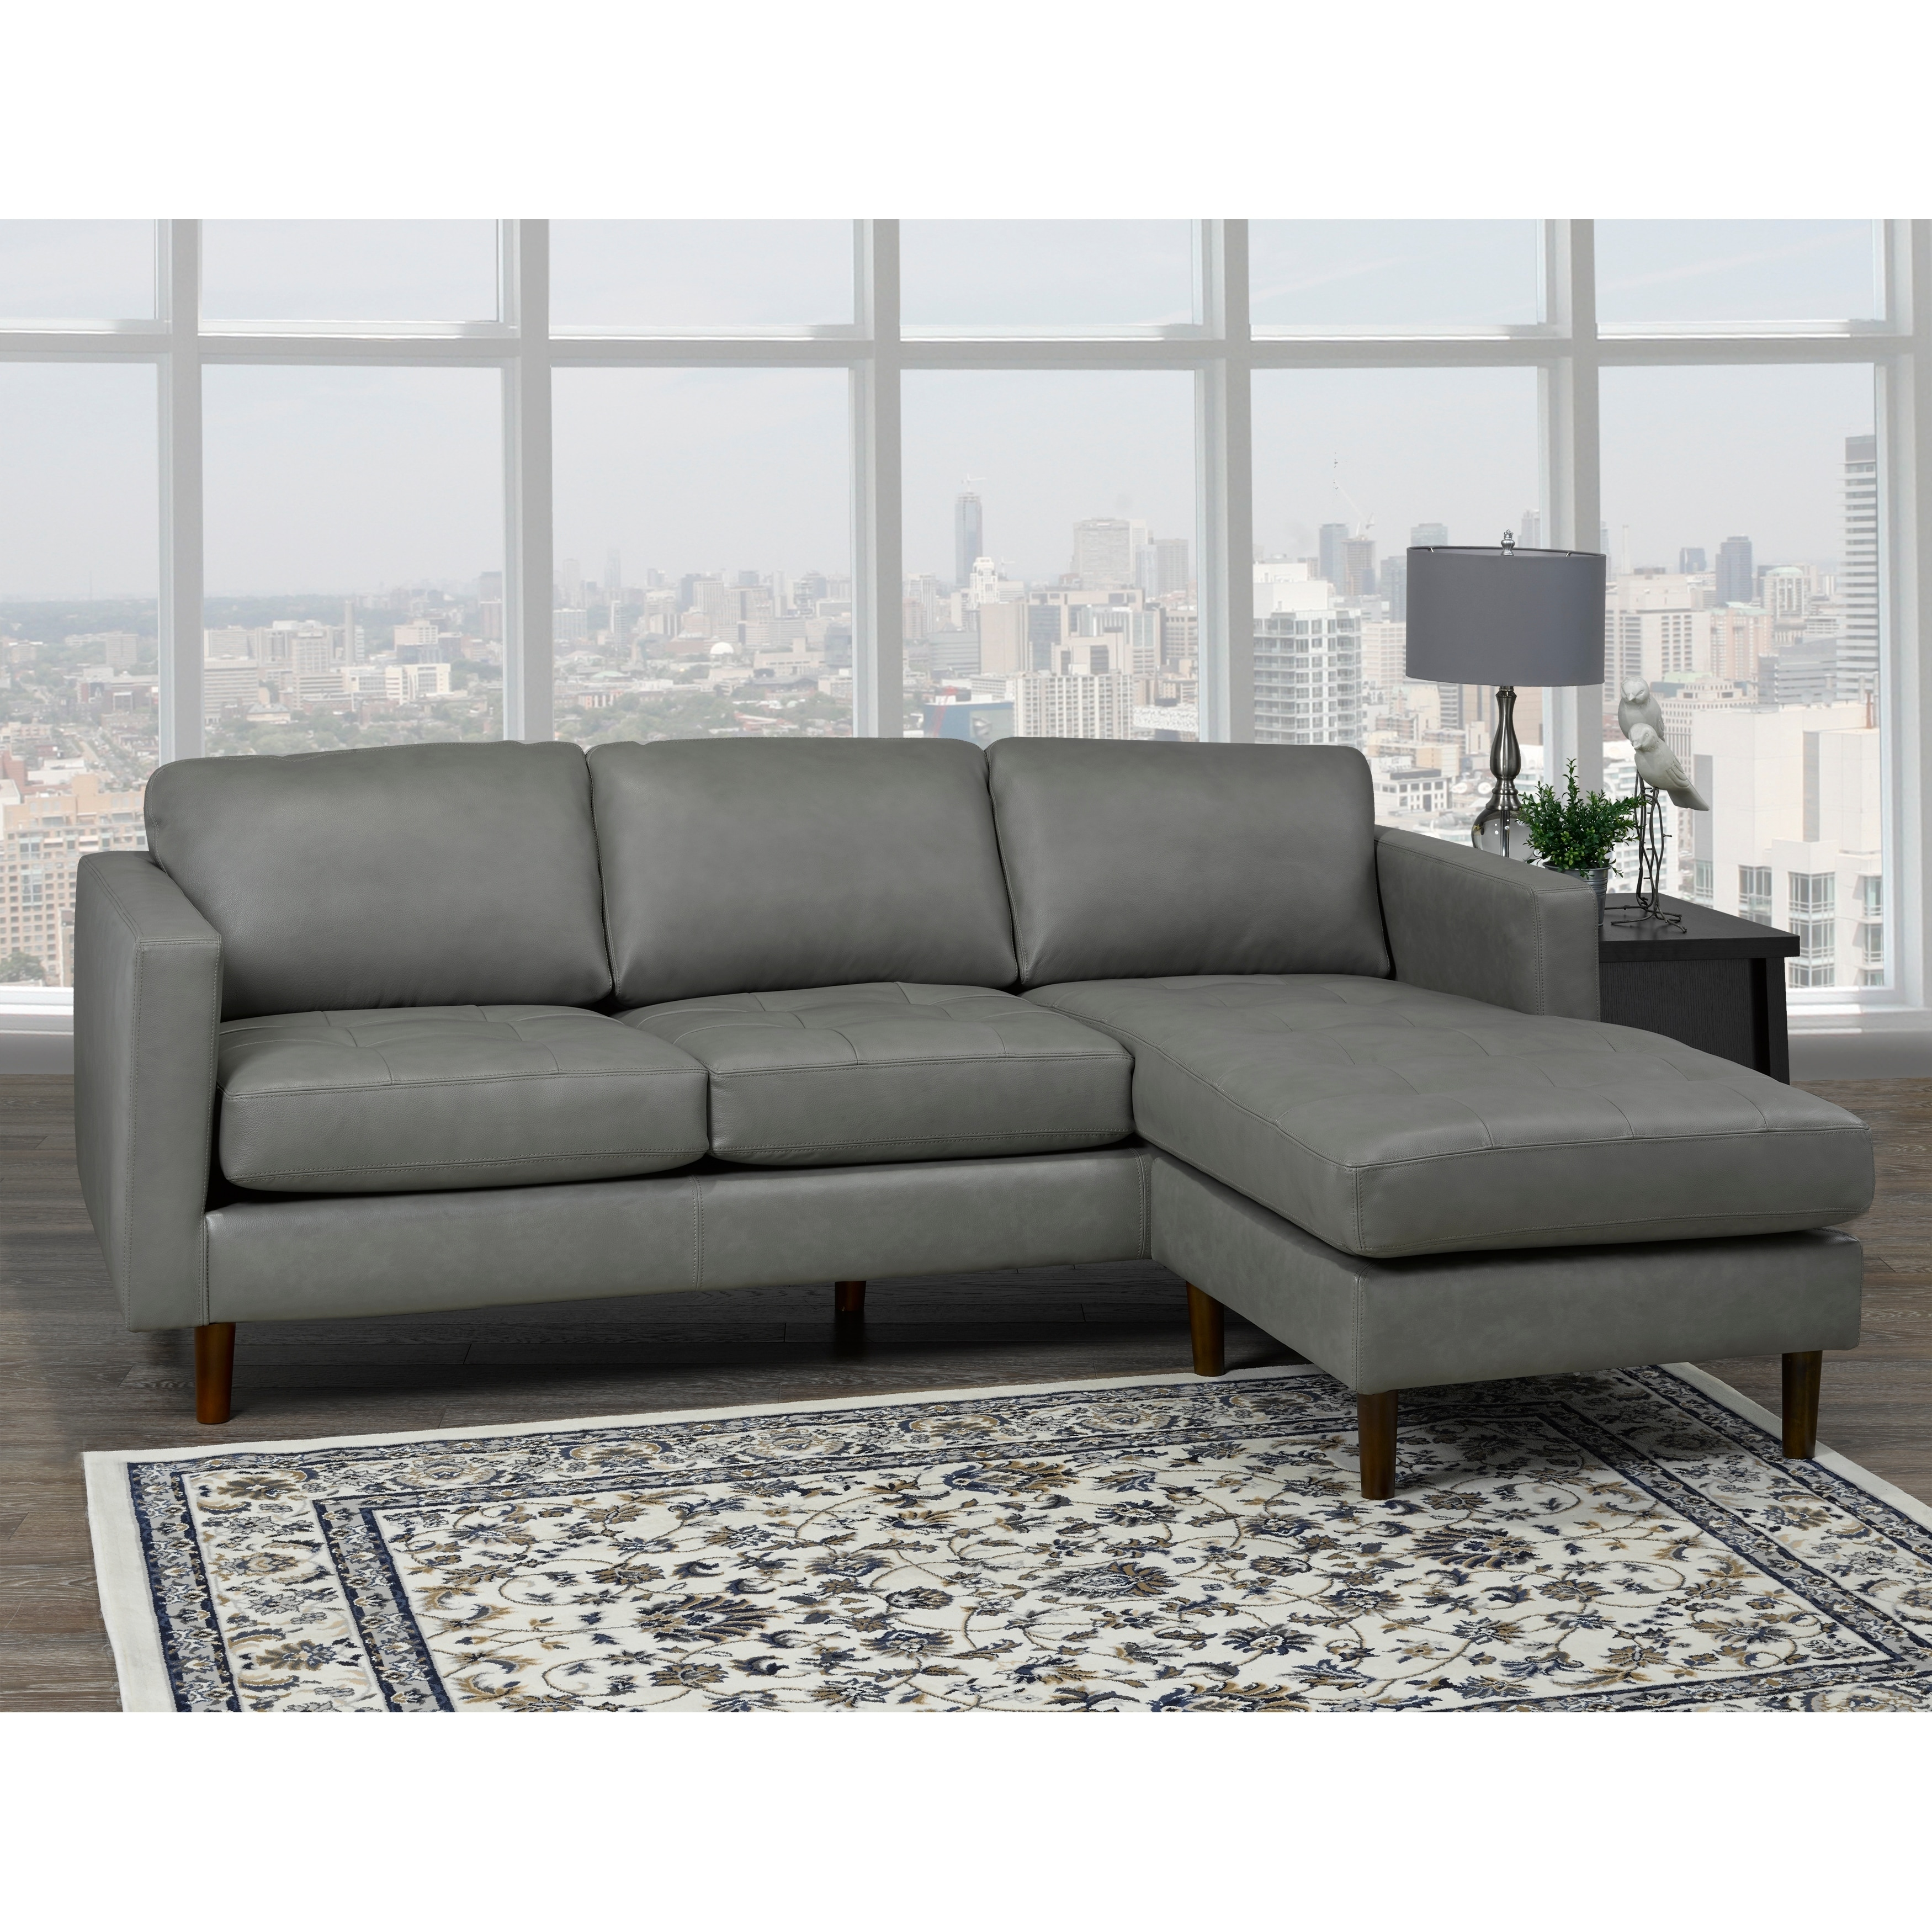 Des Mid Century Modern Grey Top Grain Leather Tufted Sectional Sofa 88 X 38 X 35 Overstock 20892272